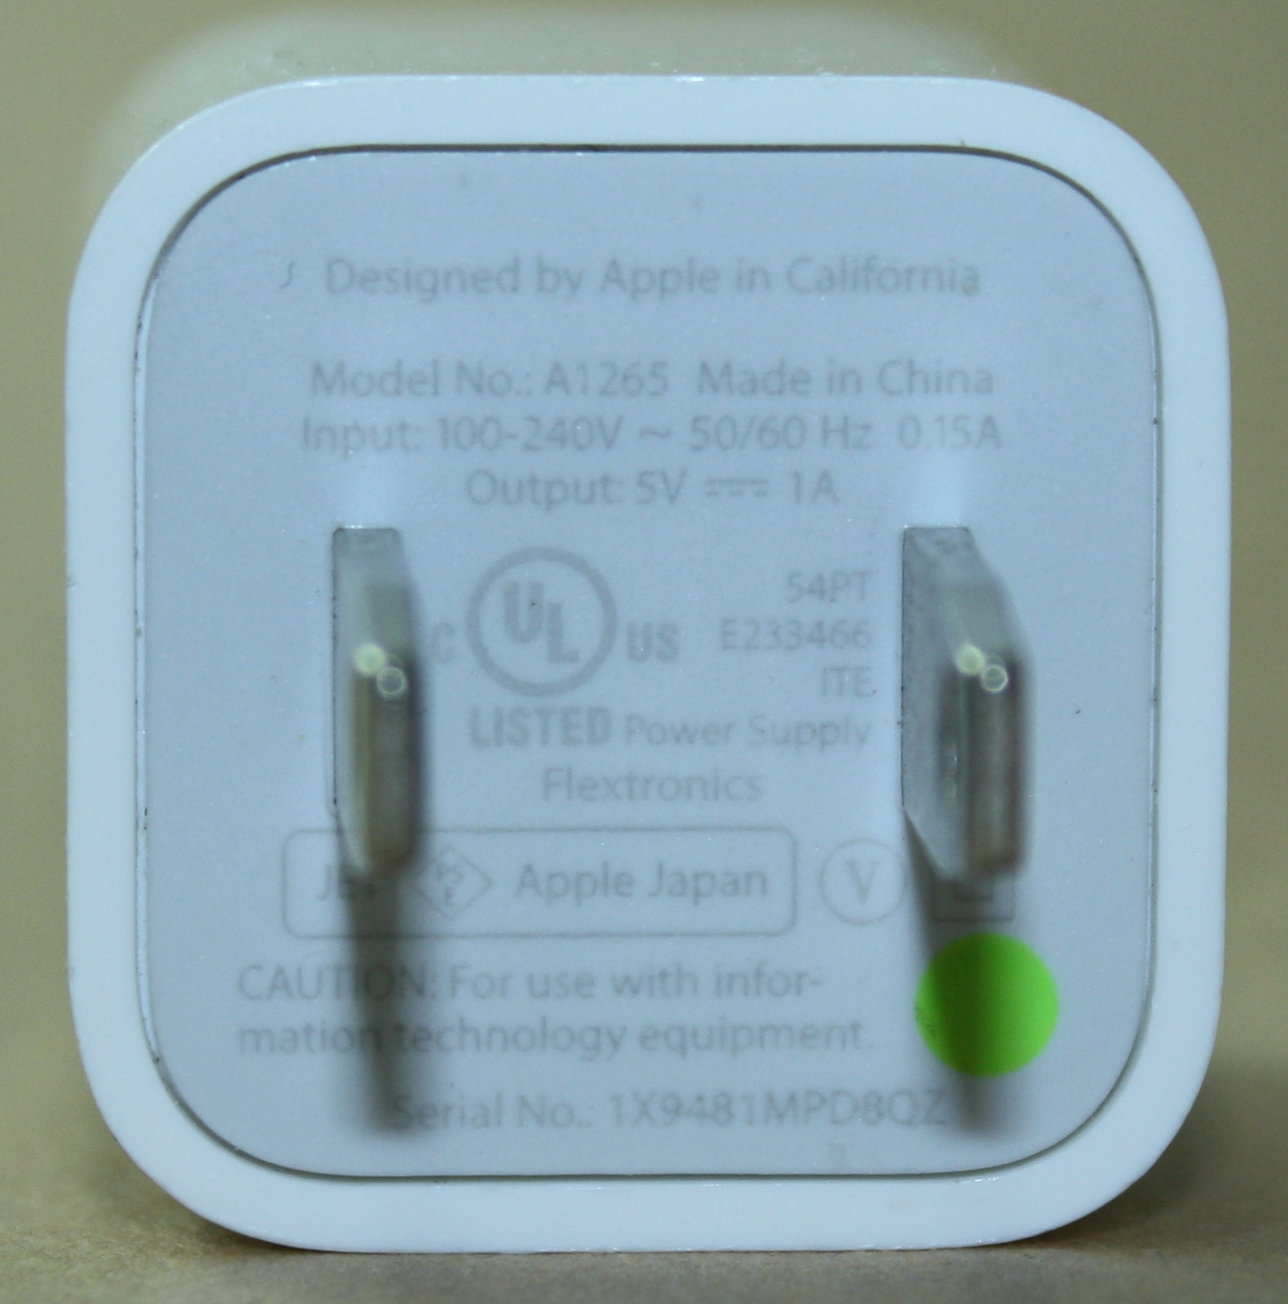 Apple Iphone Charger Teardown Quality In A Tiny Expensive Package Diagram Also Of Ipad Usb Cable Pinout On Serial Port Wiring Apples 2008 Safety Recall